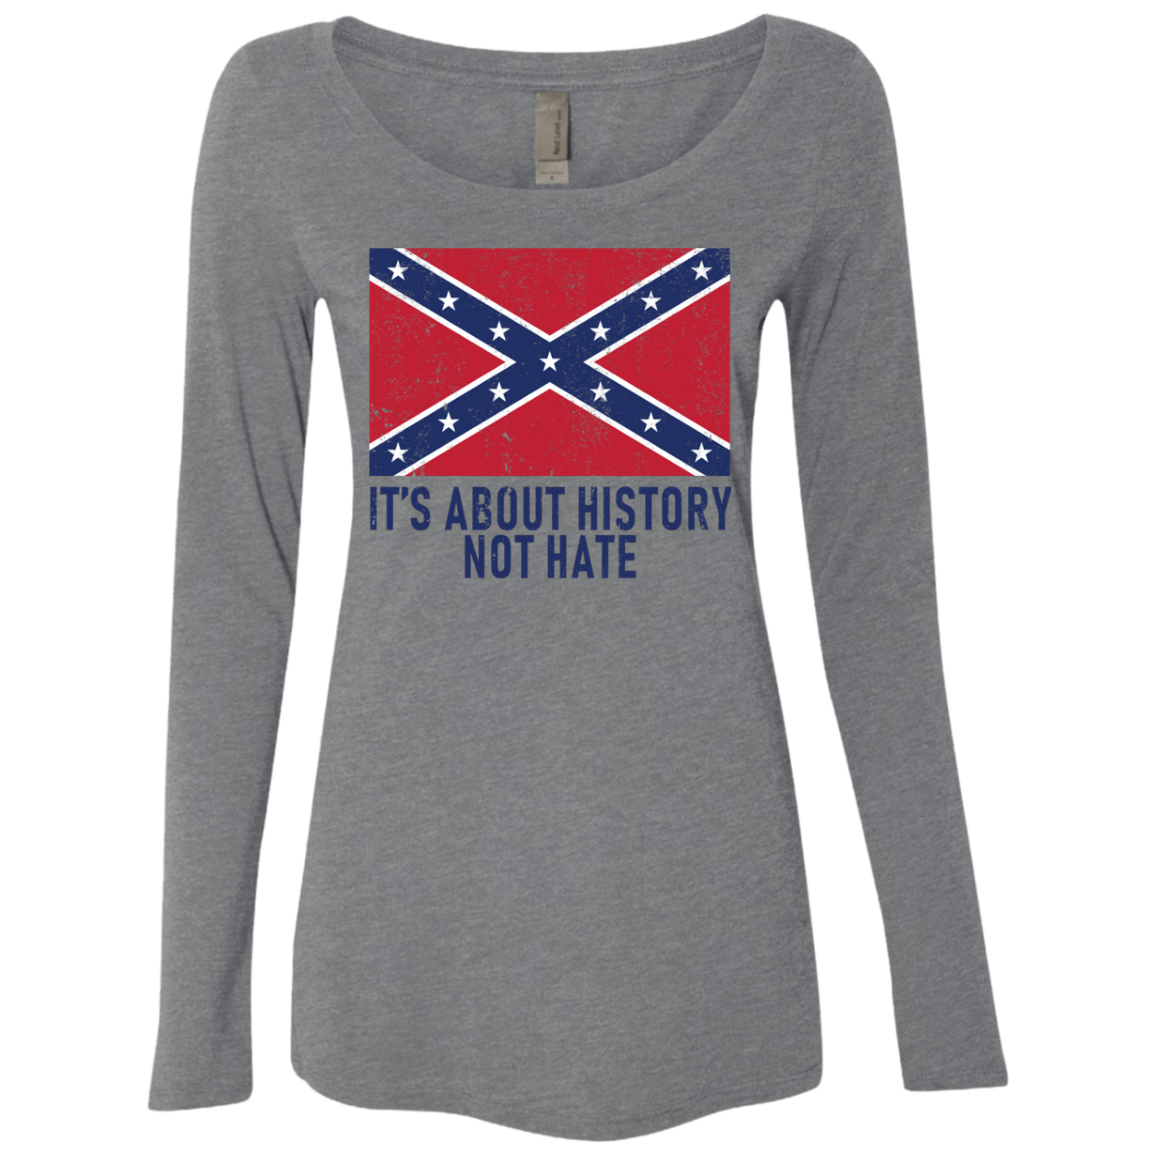 It's About History Not Hate Women's Long Sleeve Tee